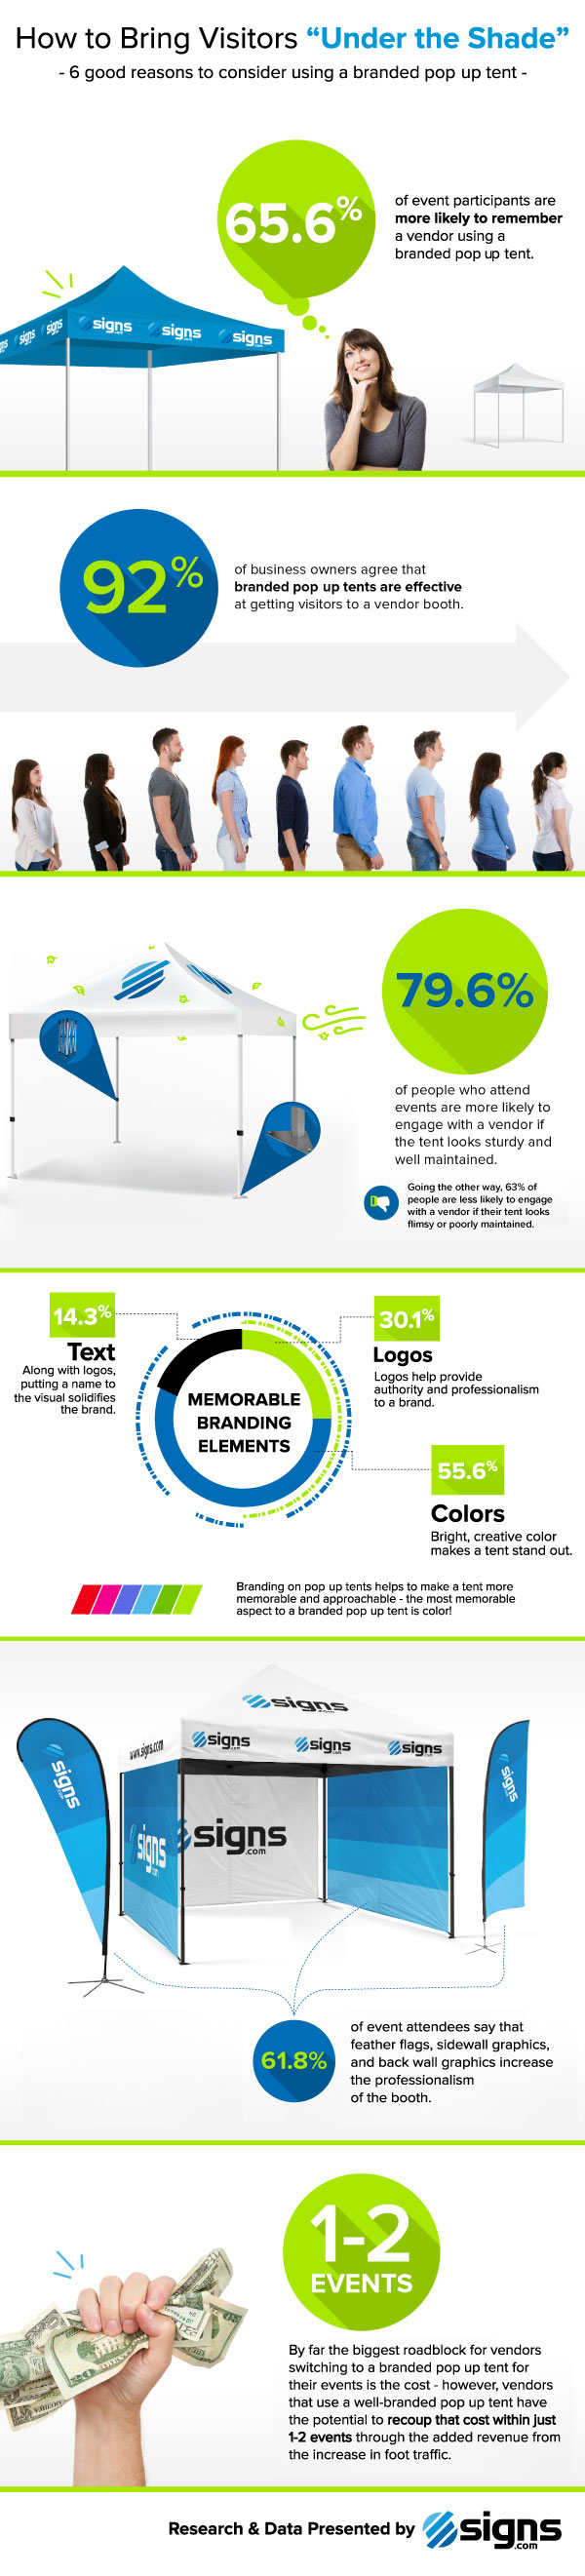 Custom Pop up tent research infographic